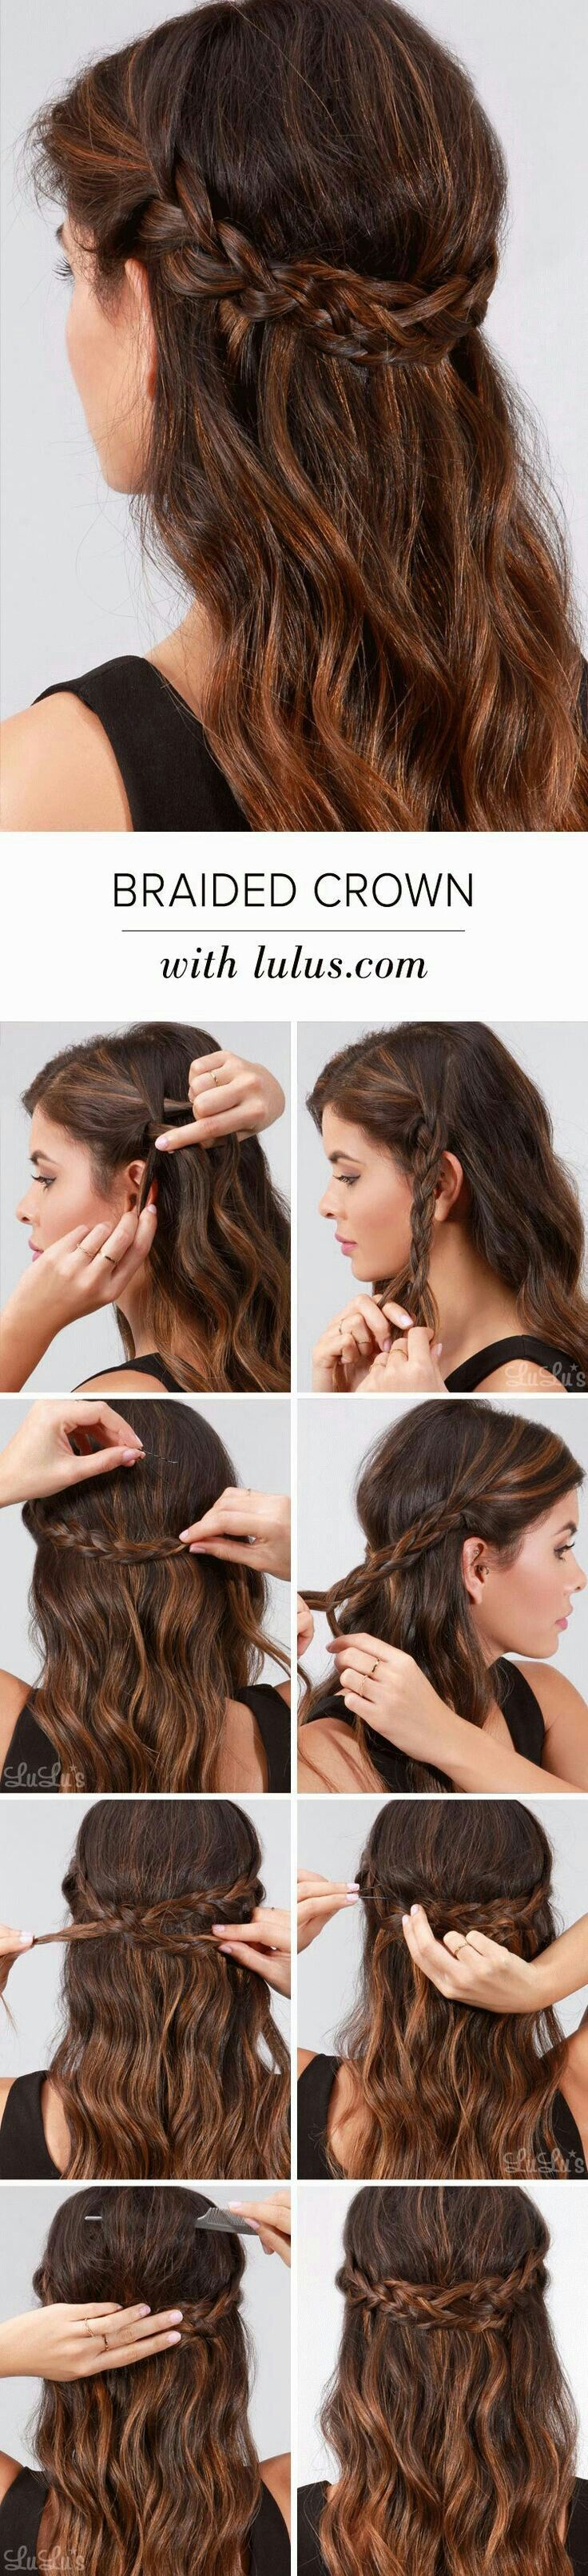 2128 best Cute Hairstyles images on Pinterest